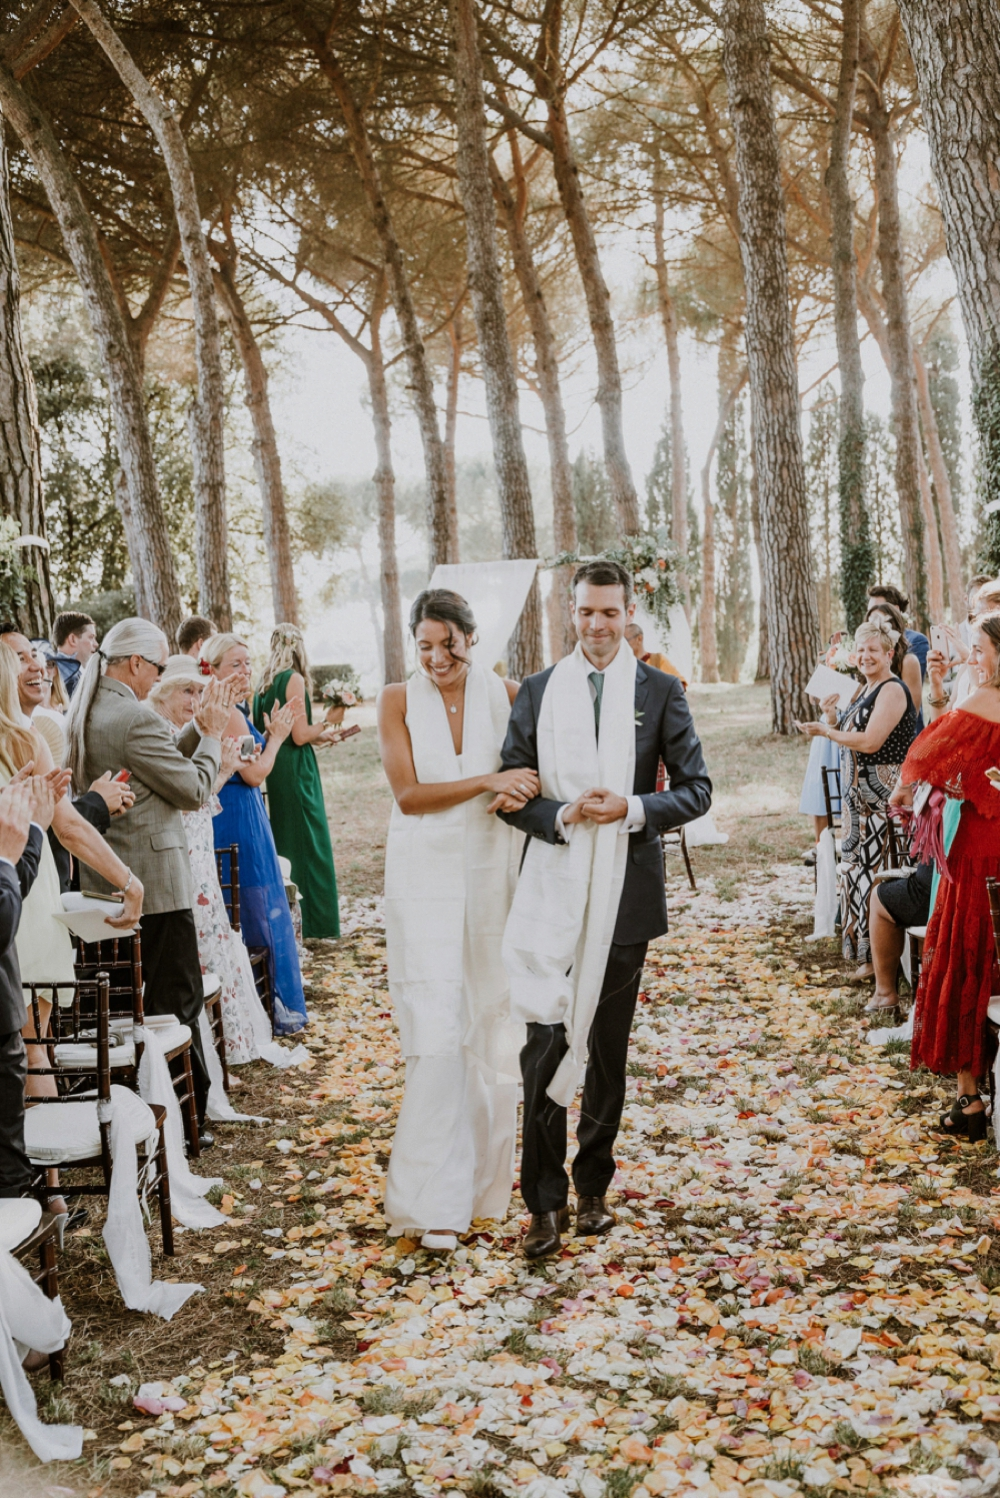 recessional - buddhist wedding in italy